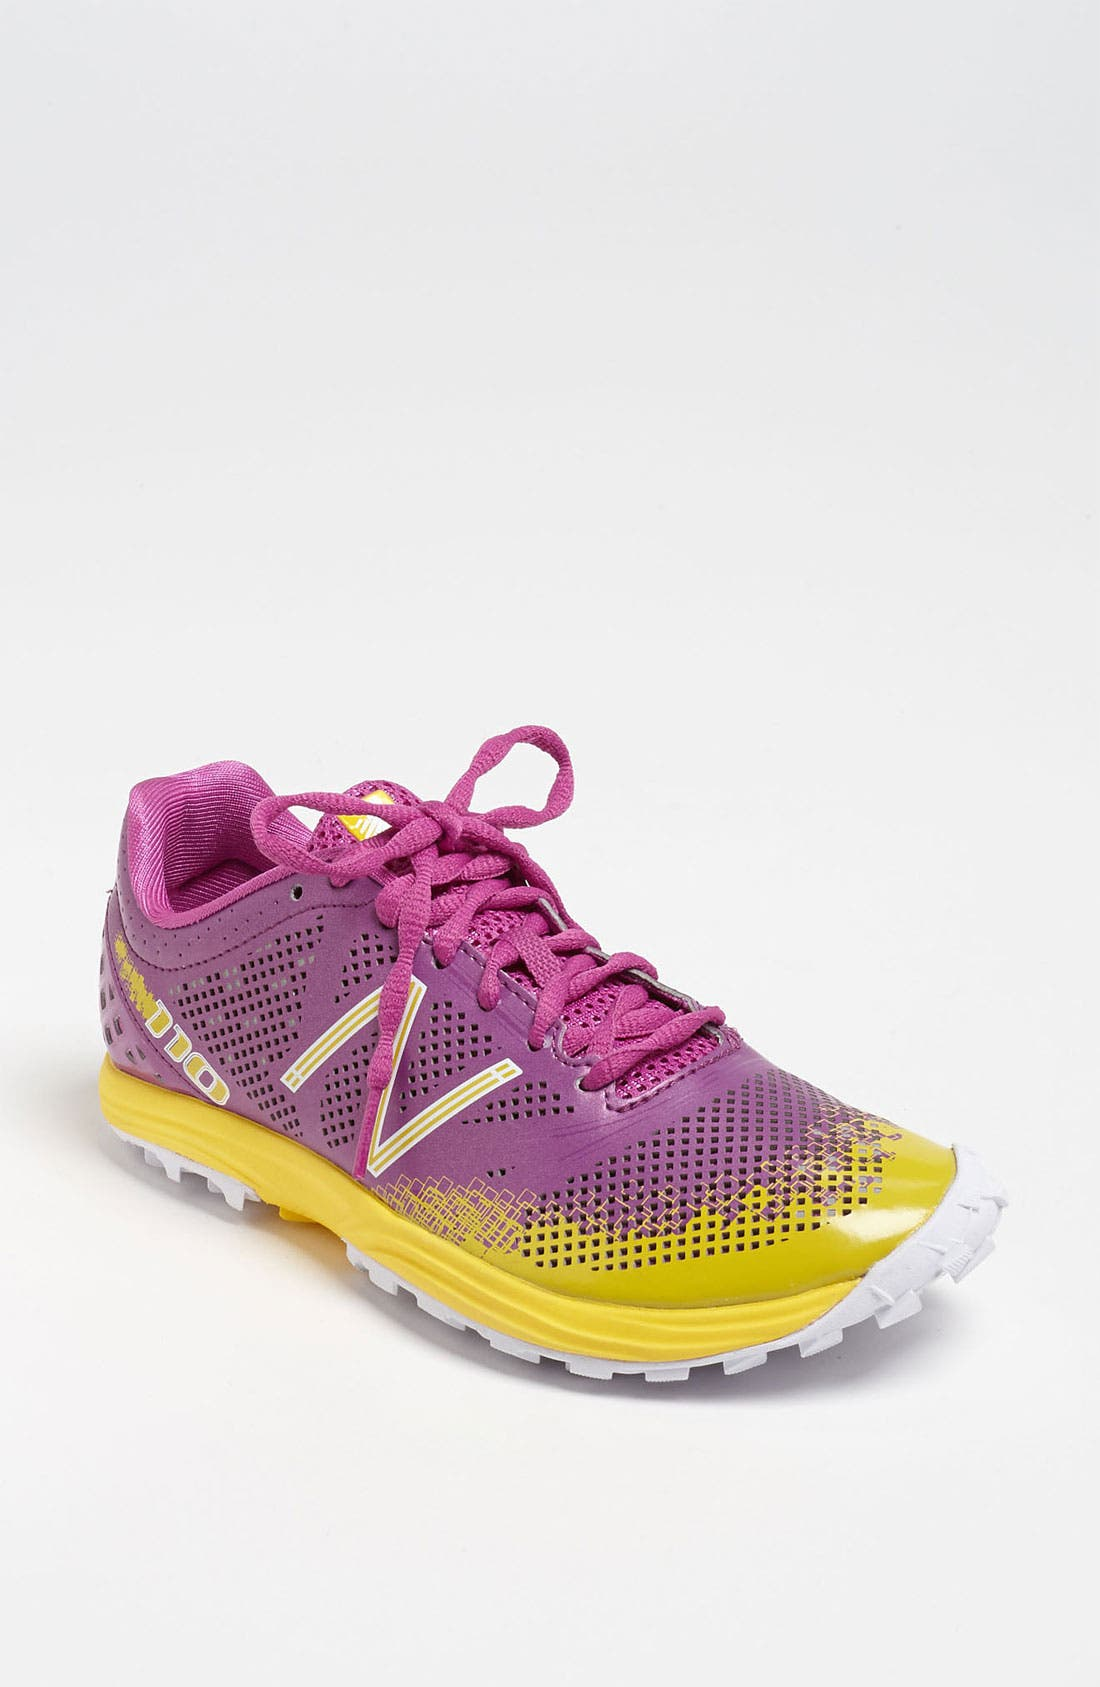 Alternate Image 1 Selected - New Balance '110 V1' Trail Running Shoe (Women)(Retail Price: $89.95)